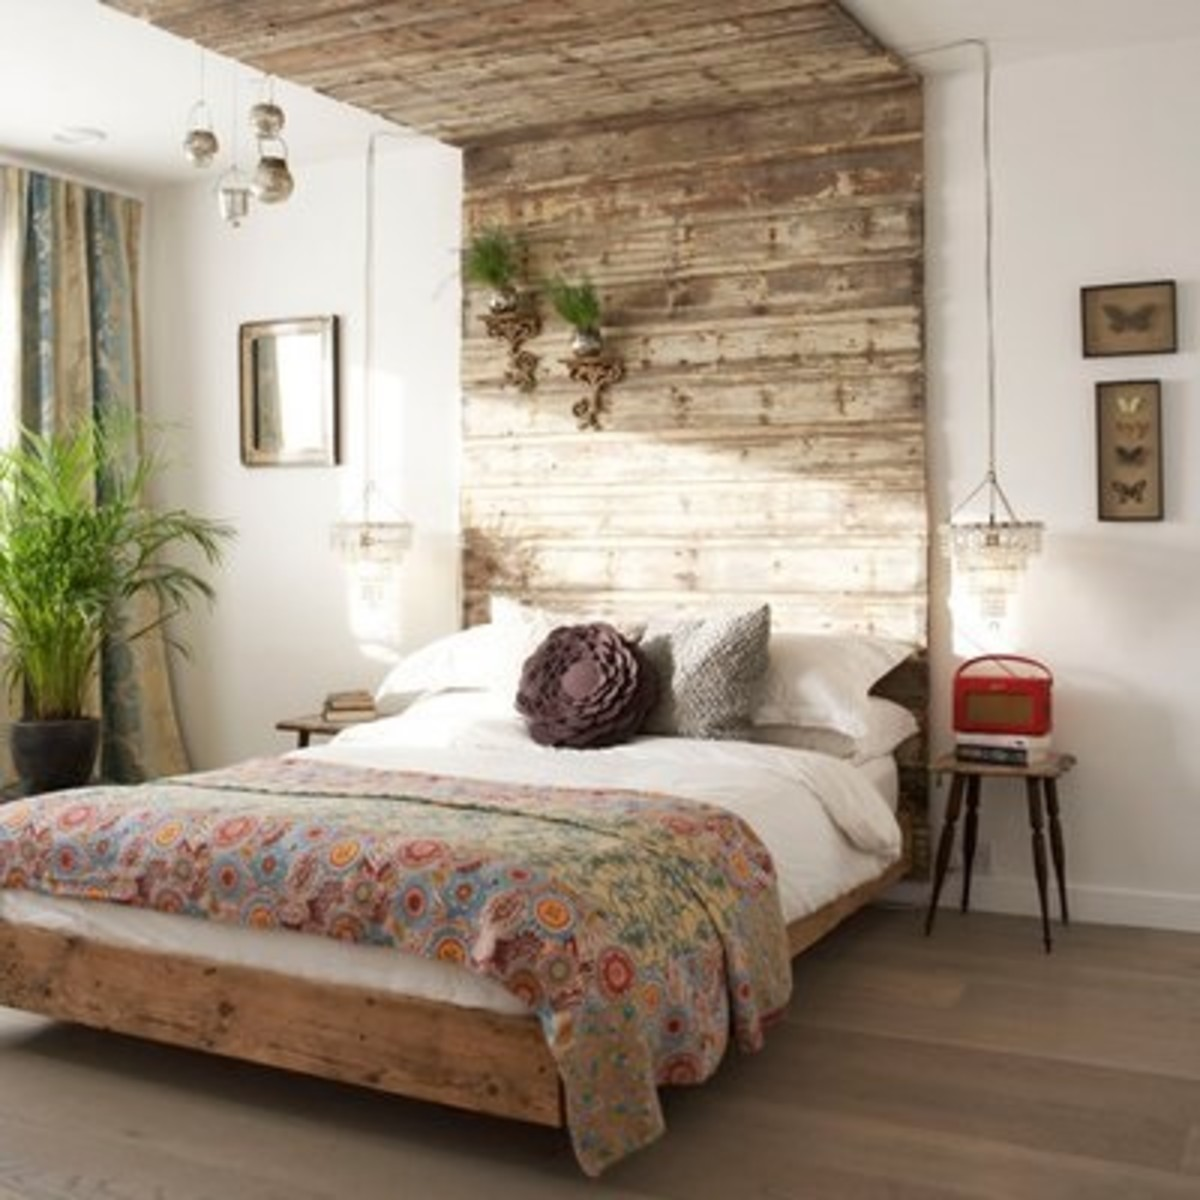 Minimalist style with a rustic touch. Uncluttered, simple, and stylish for the bachelor who loves the simple life.